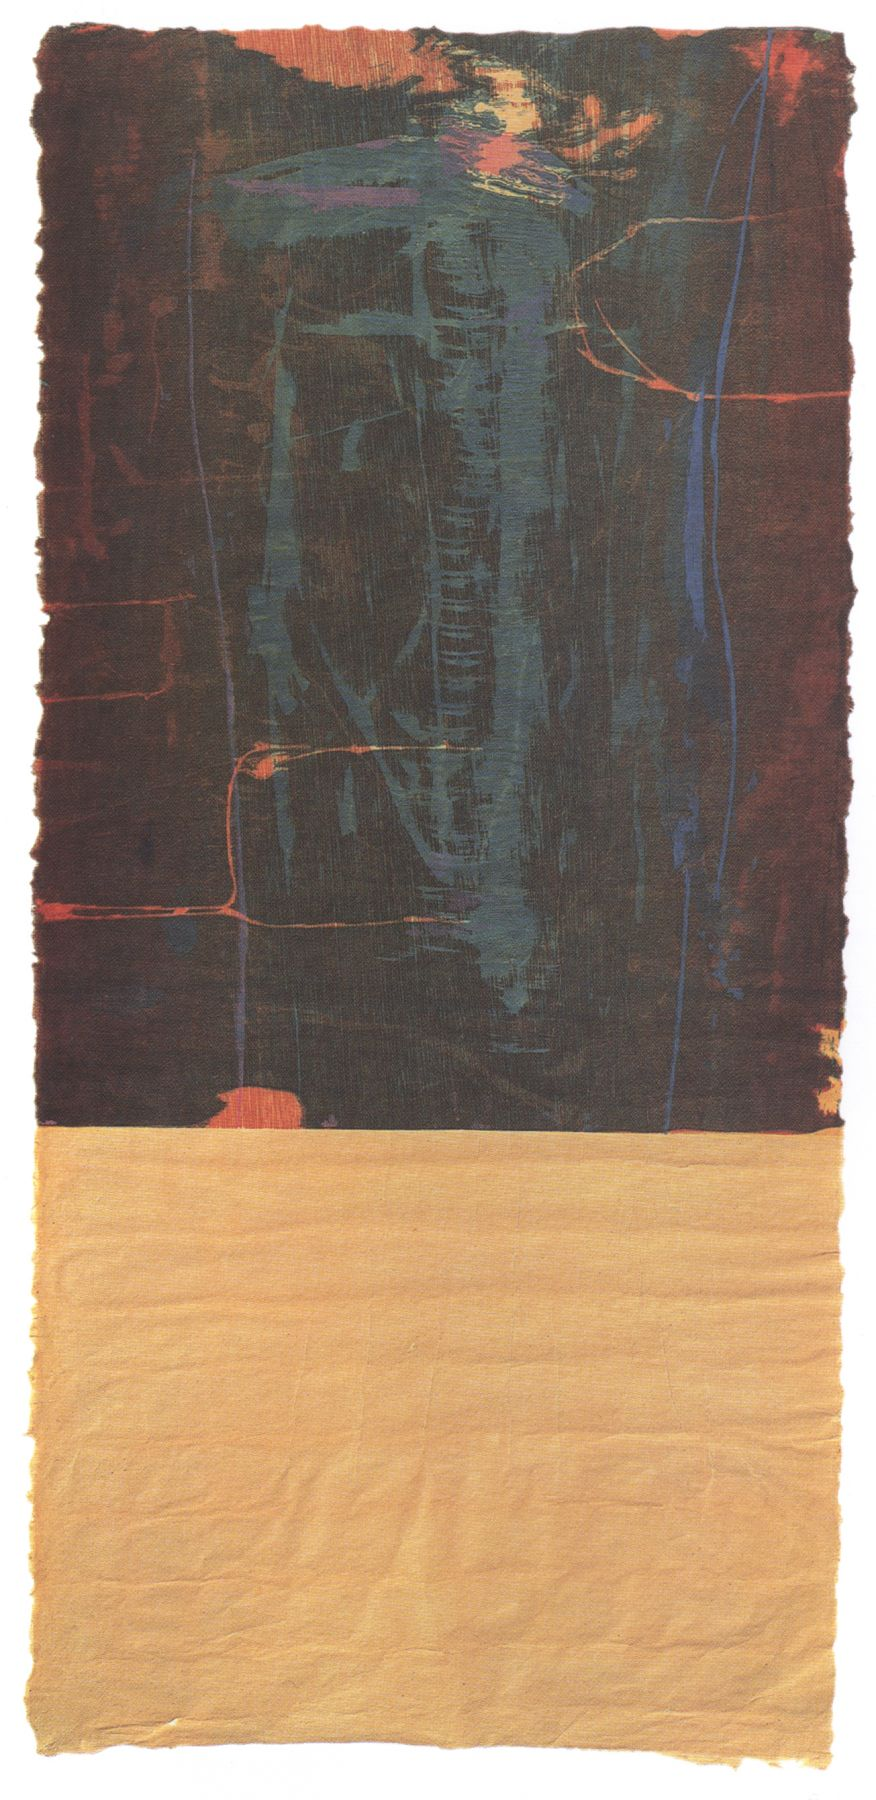 Helen Frankenthaler Trial proof 19